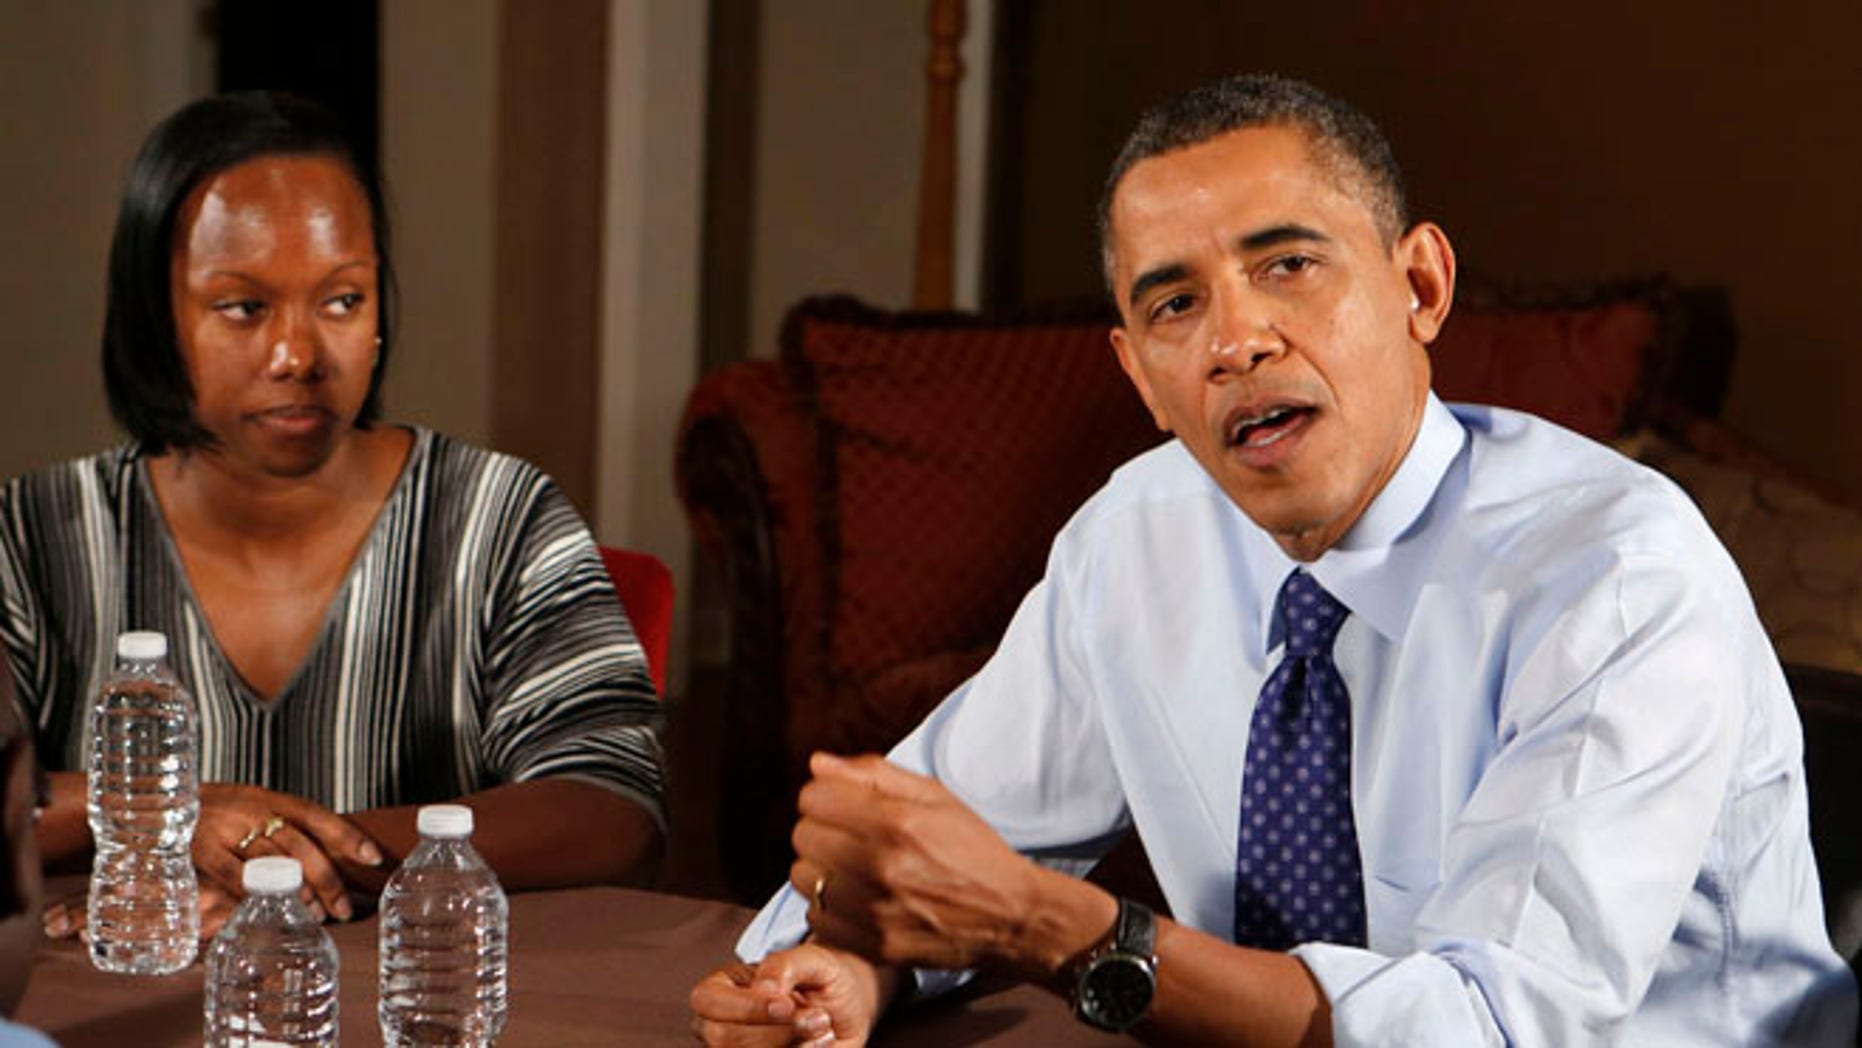 Dec. 6: President Obama visits members of middle class families to discuss his administration's tax push.